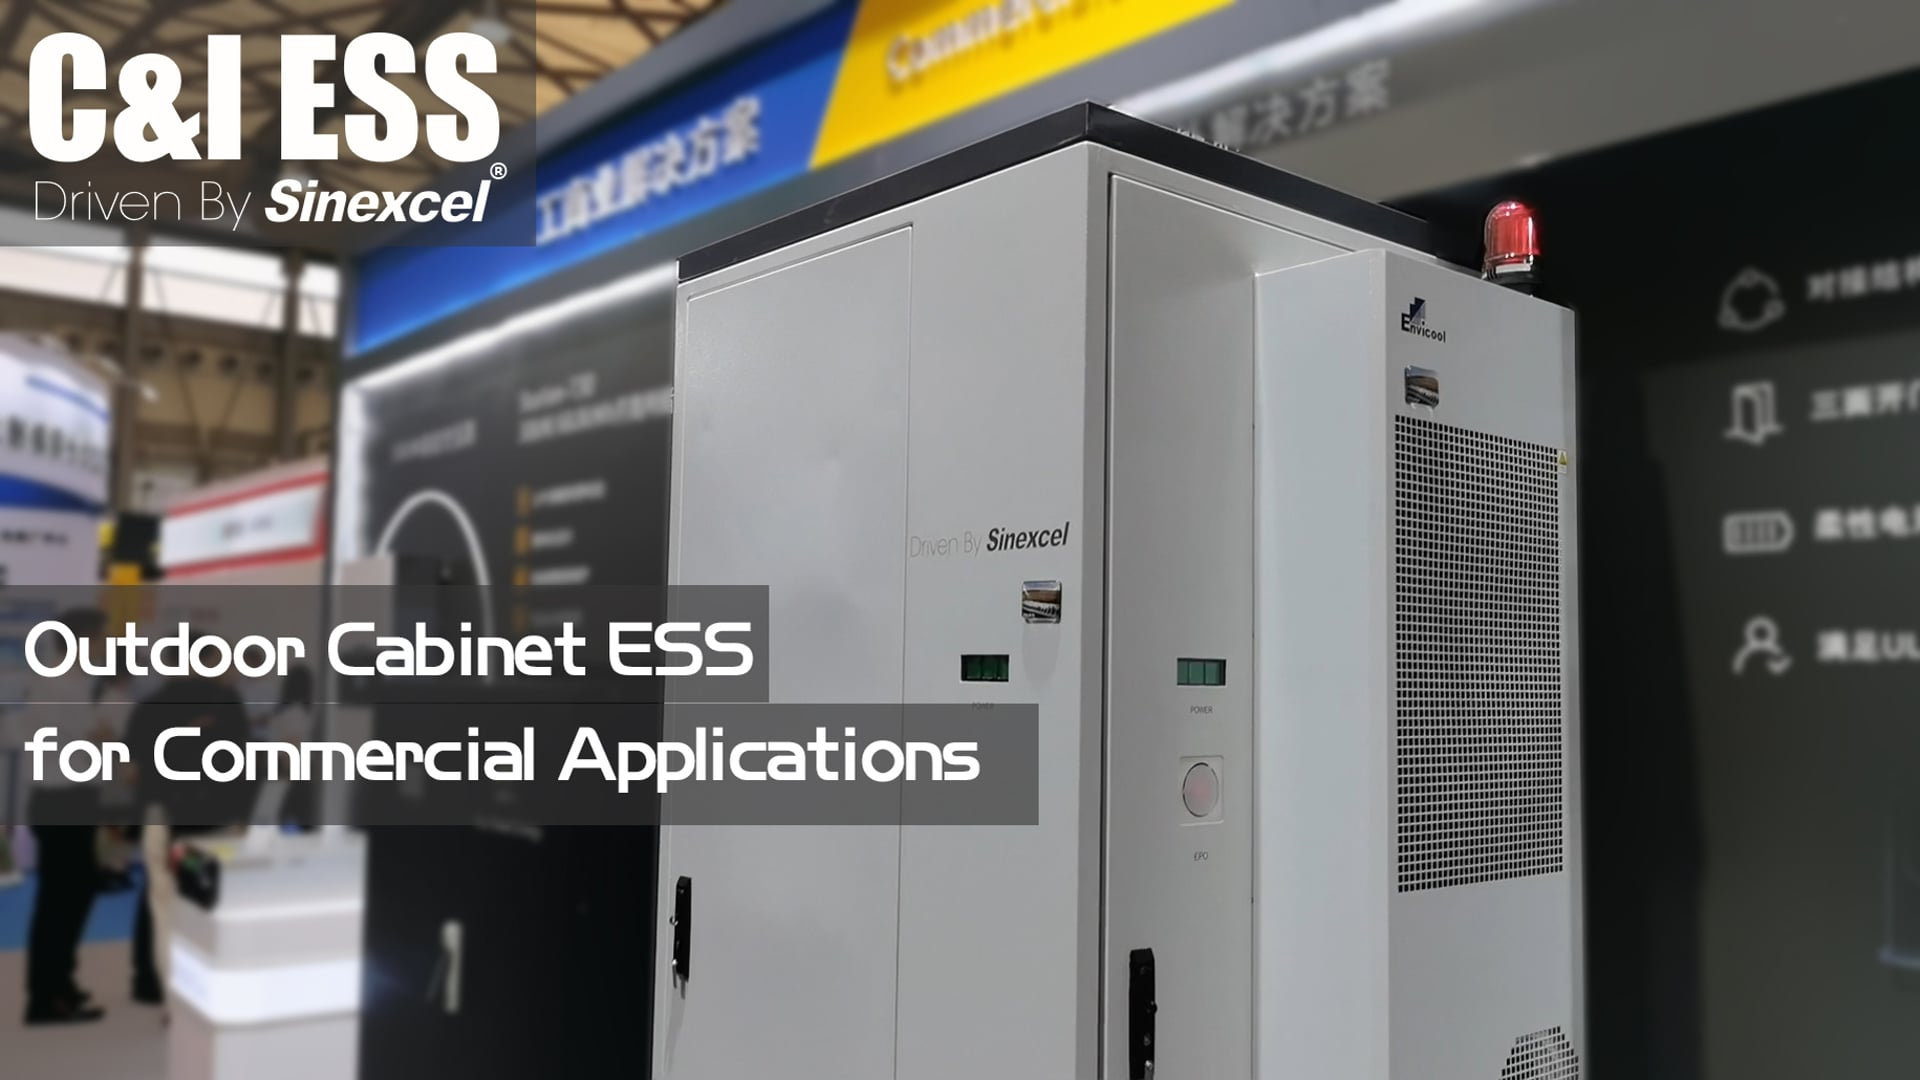 Outdoor Cabinet ESS for Commercial Applications